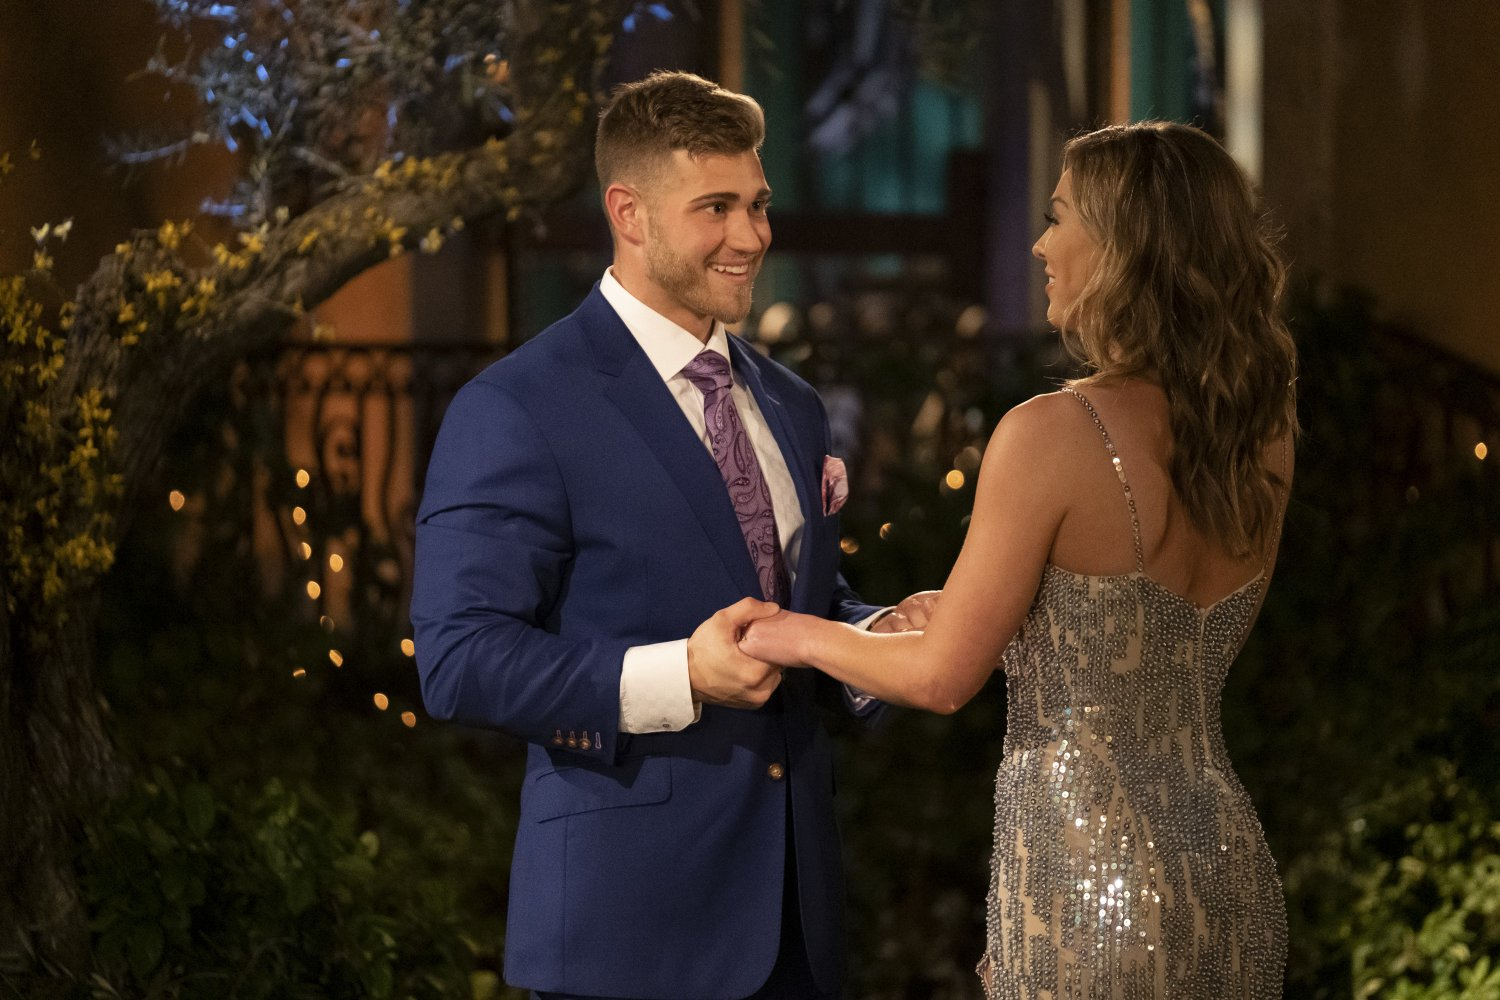 Luke Parker 5 Things To Know About The Bachelorette